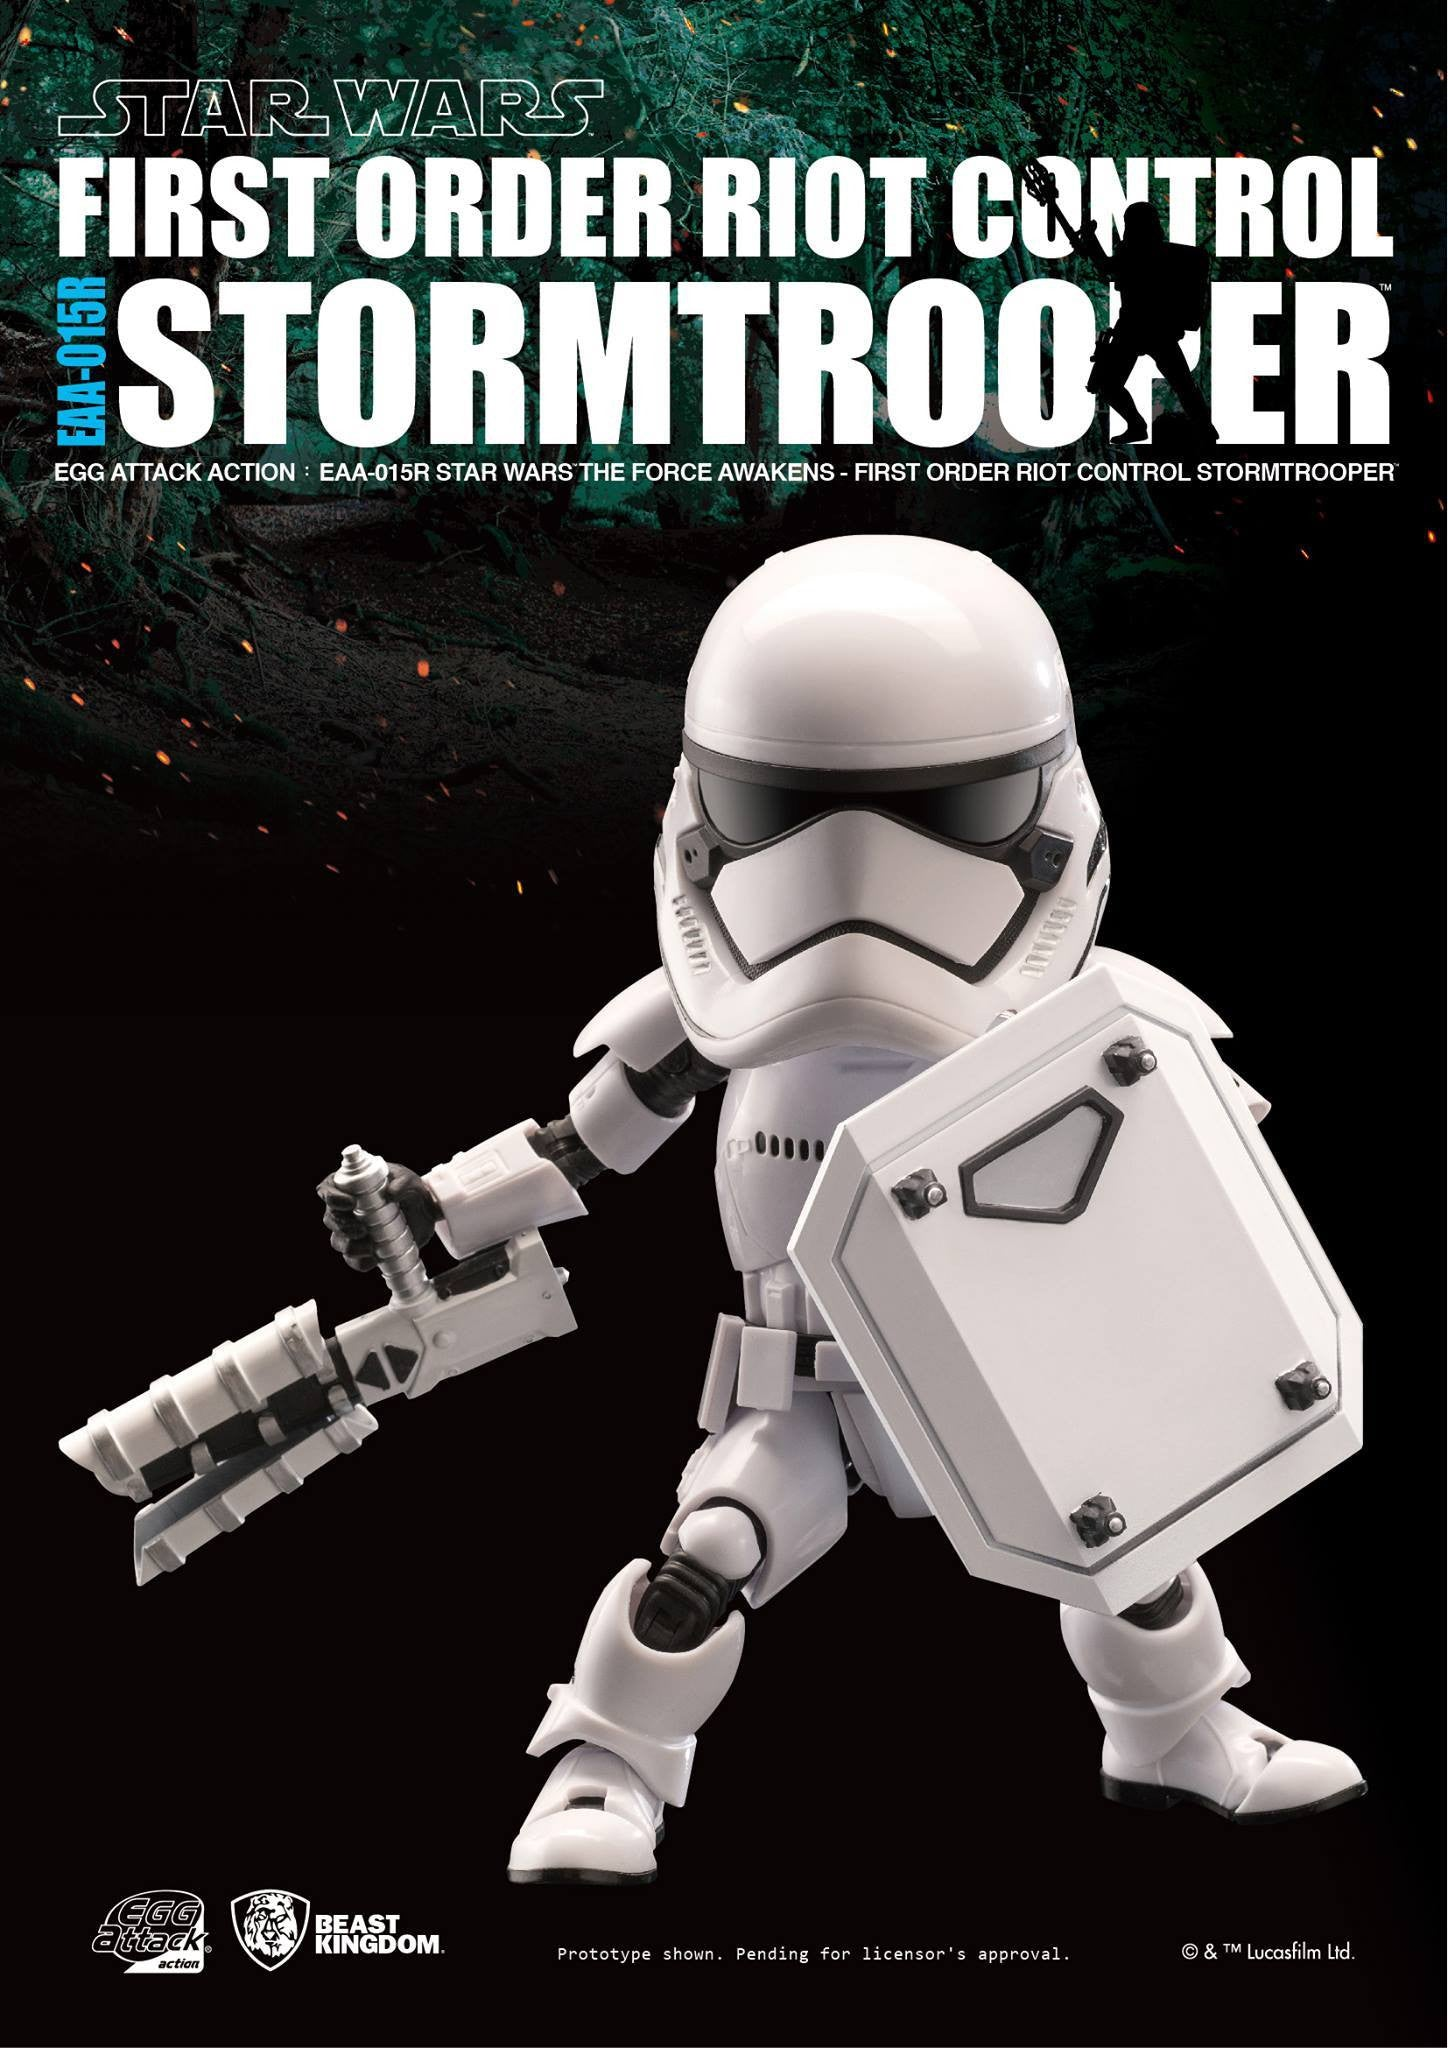 Egg Attack Action - Star Wars: The Force Awakens - EAA-015R Riot Control Stormtrooper - Marvelous Toys - 4